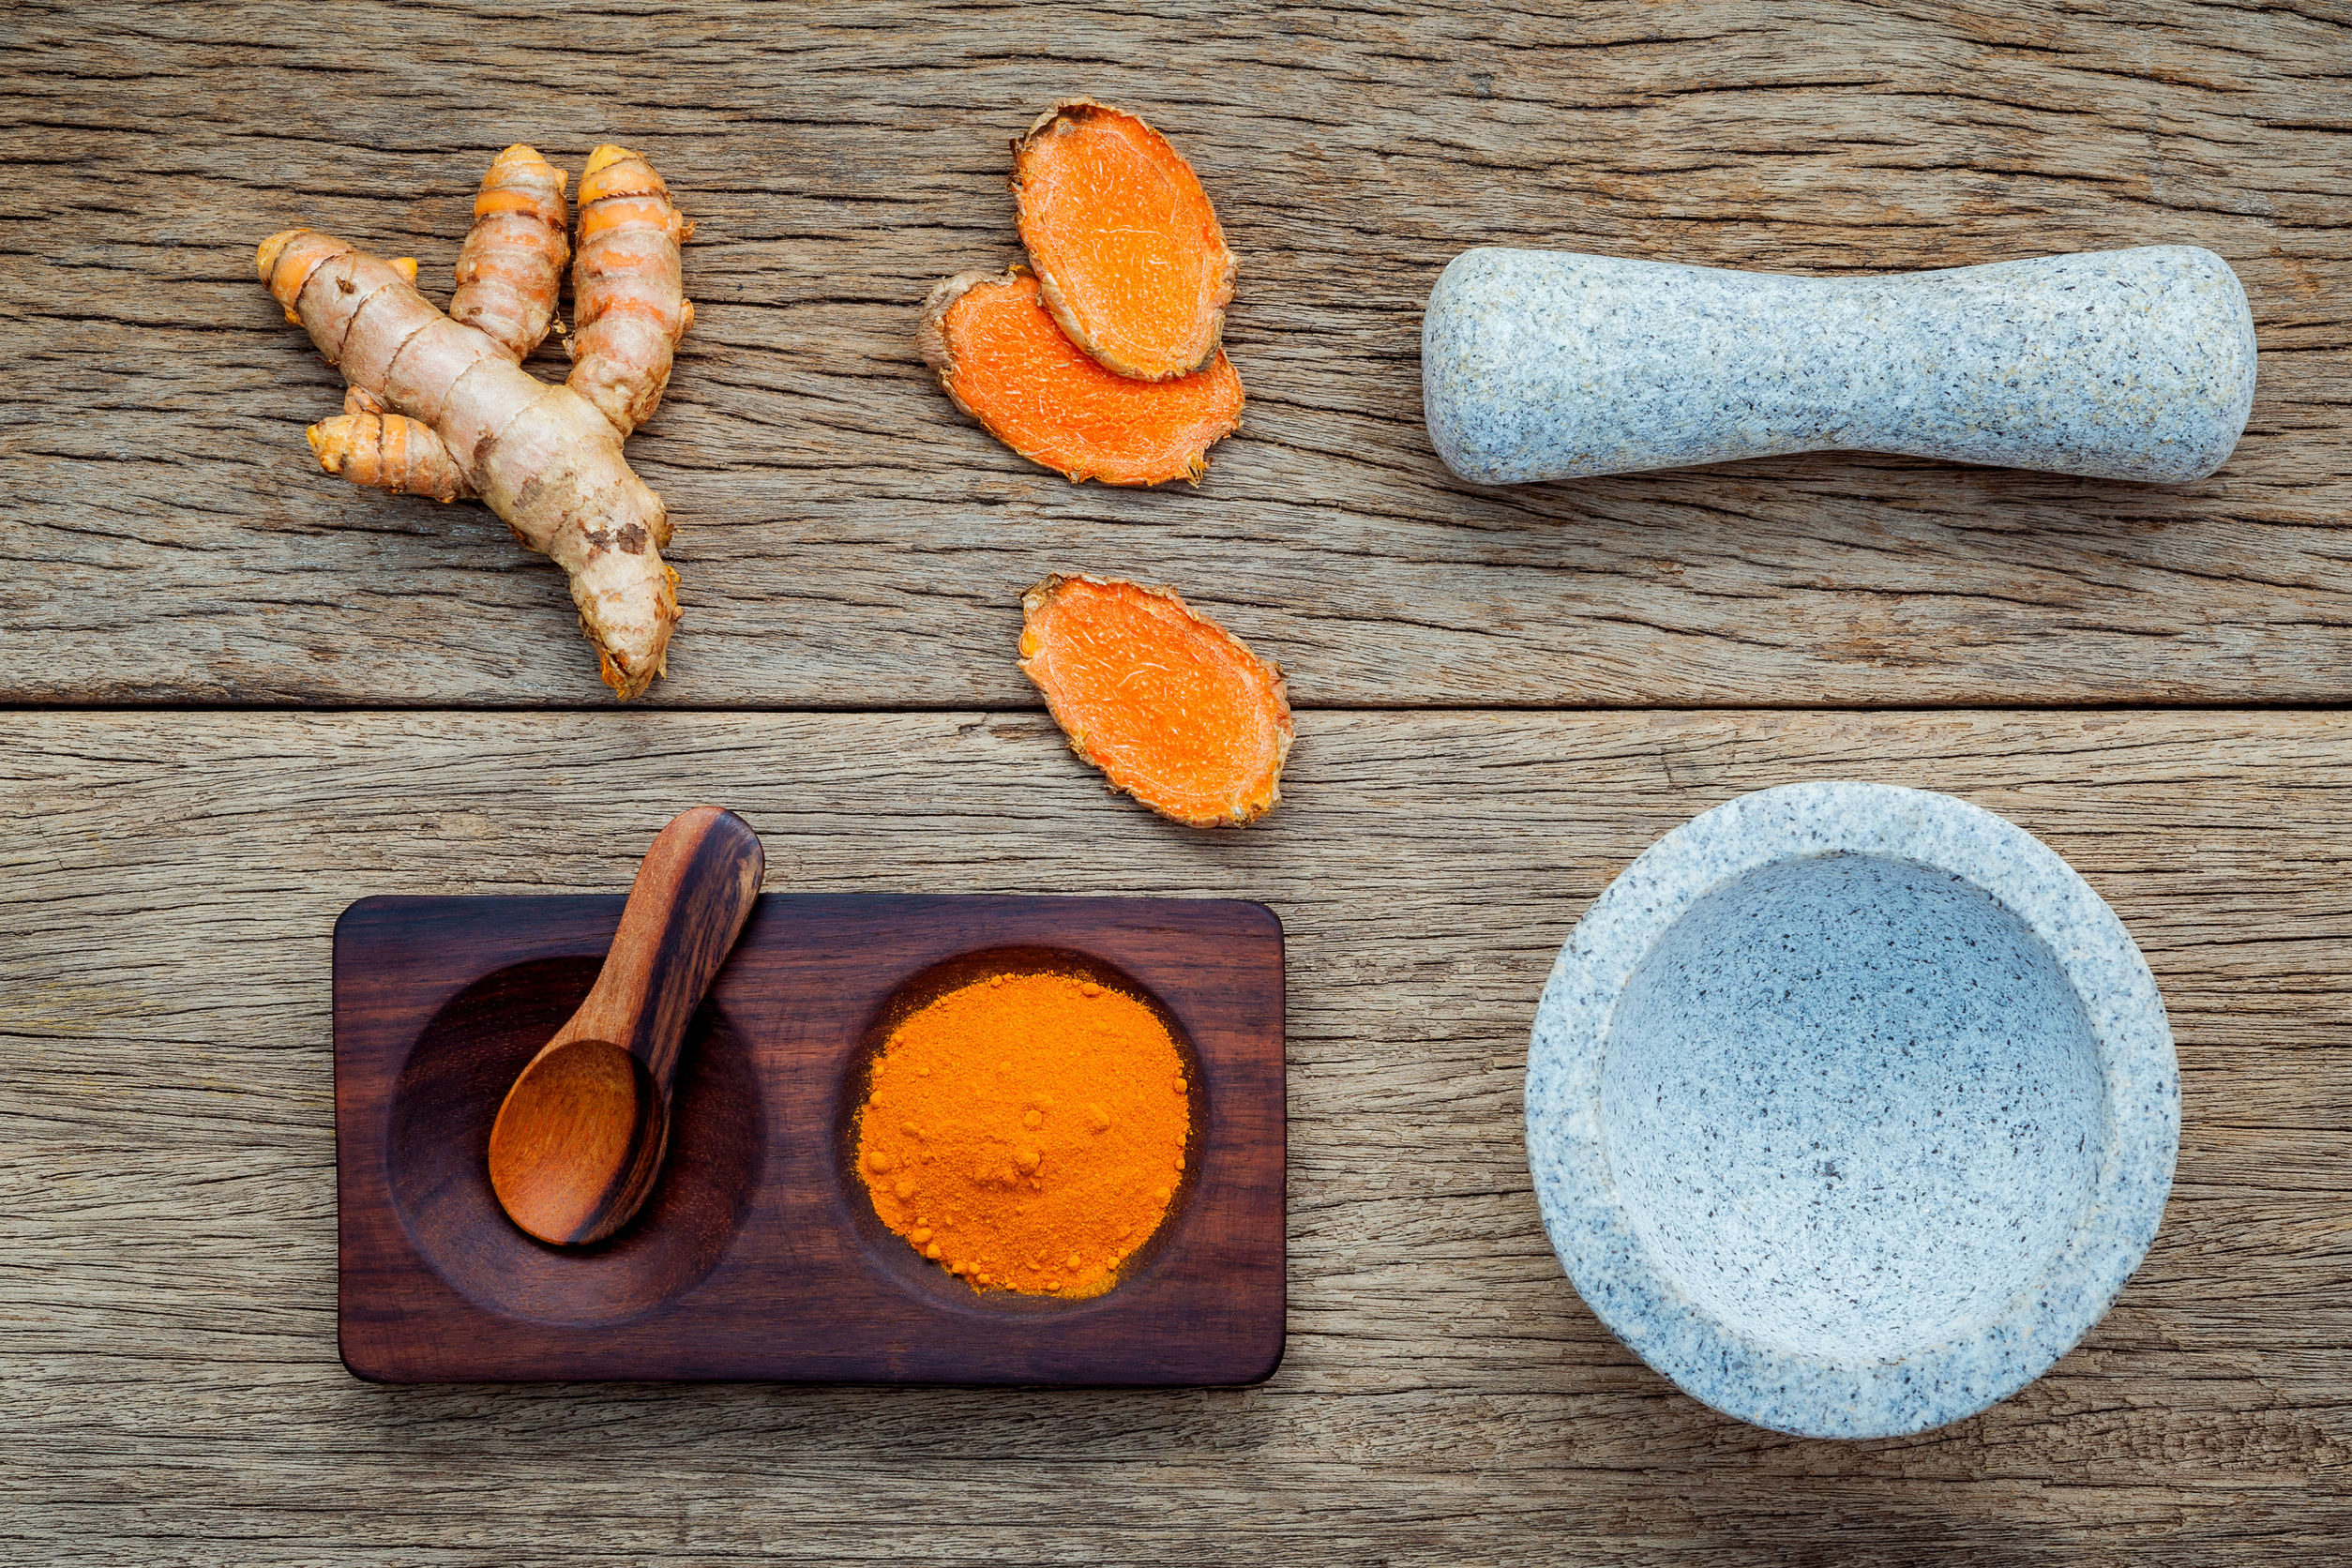 61128746 - homemade scrub curcumin powder and curcumin roots with white mortar set up on old wooden background.